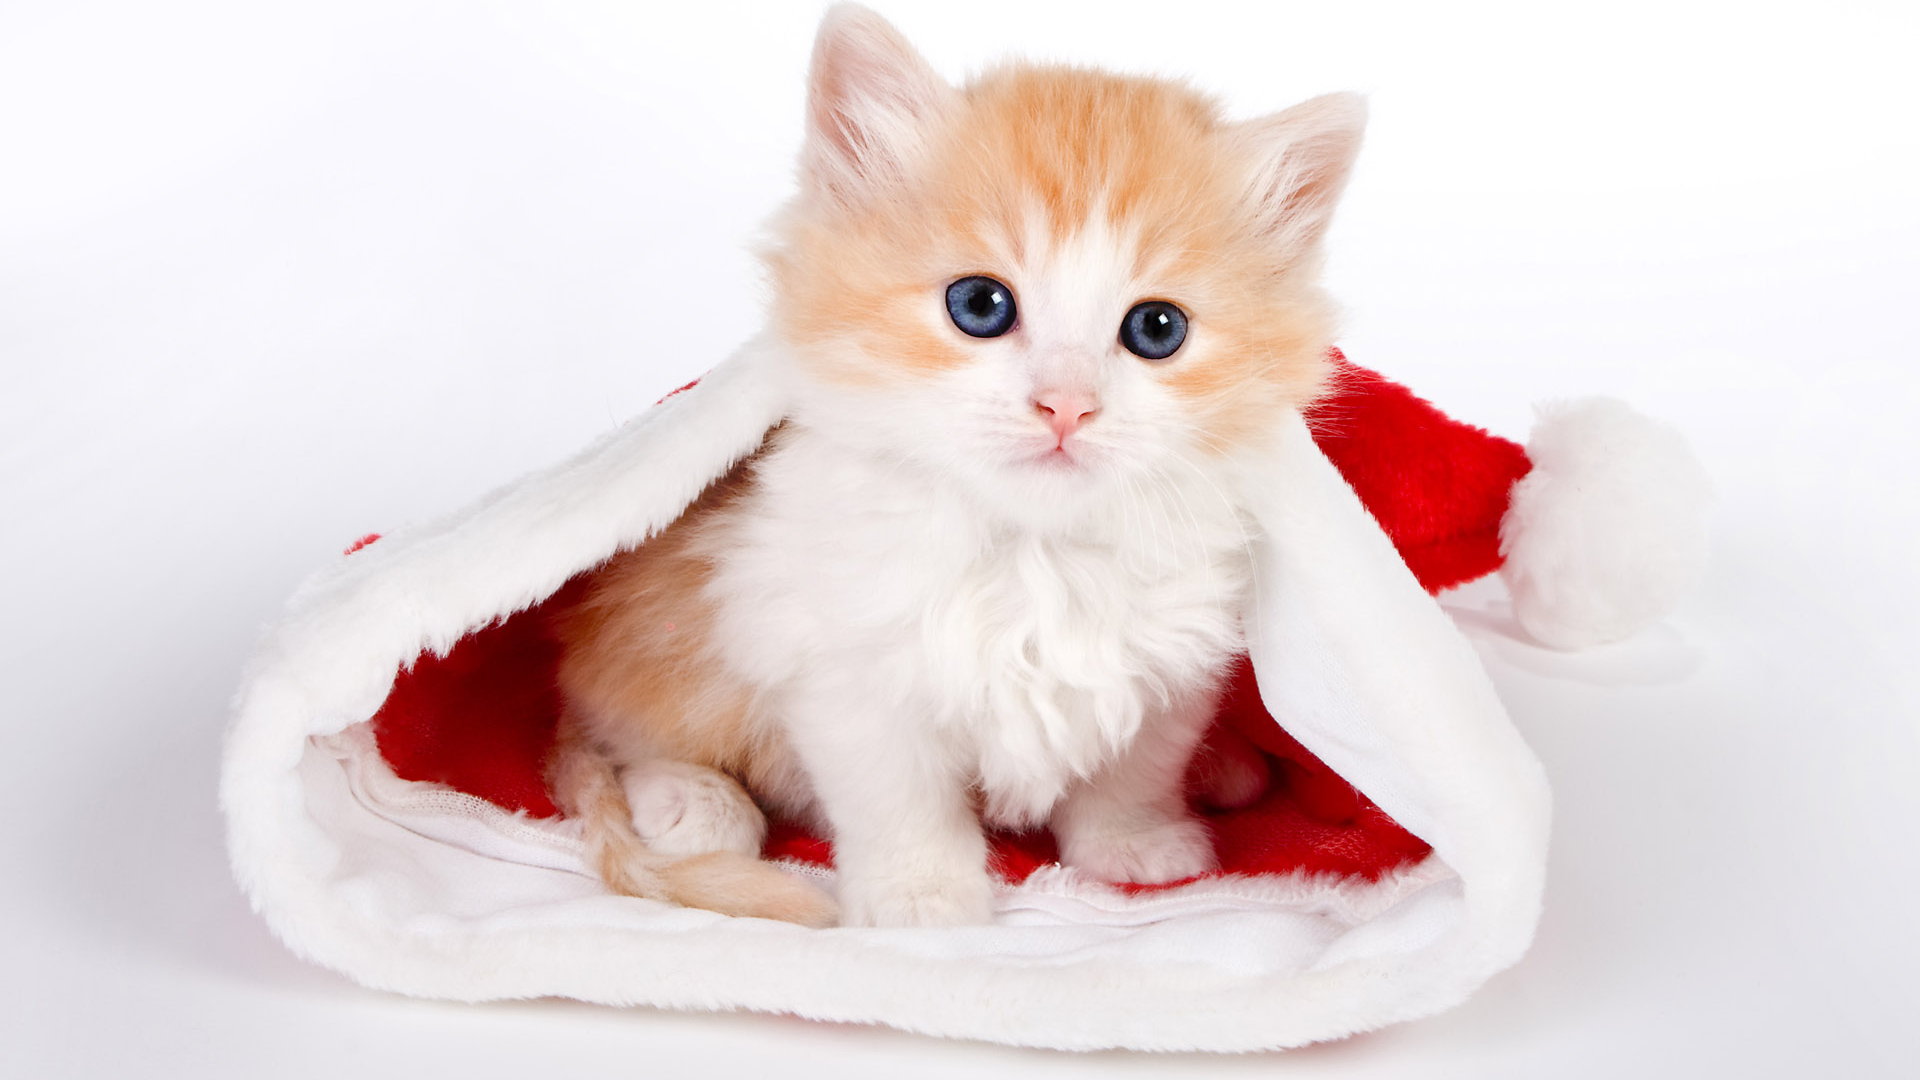 Free Download Cute Cat Wallpapers Cute Cat Desktop Wallpaper Cat Desktop 1920x1200 For Your Desktop Mobile Tablet Explore 74 Cute Kitty Wallpapers Free Kitten Wallpaper Free Kittens Wallpaper For